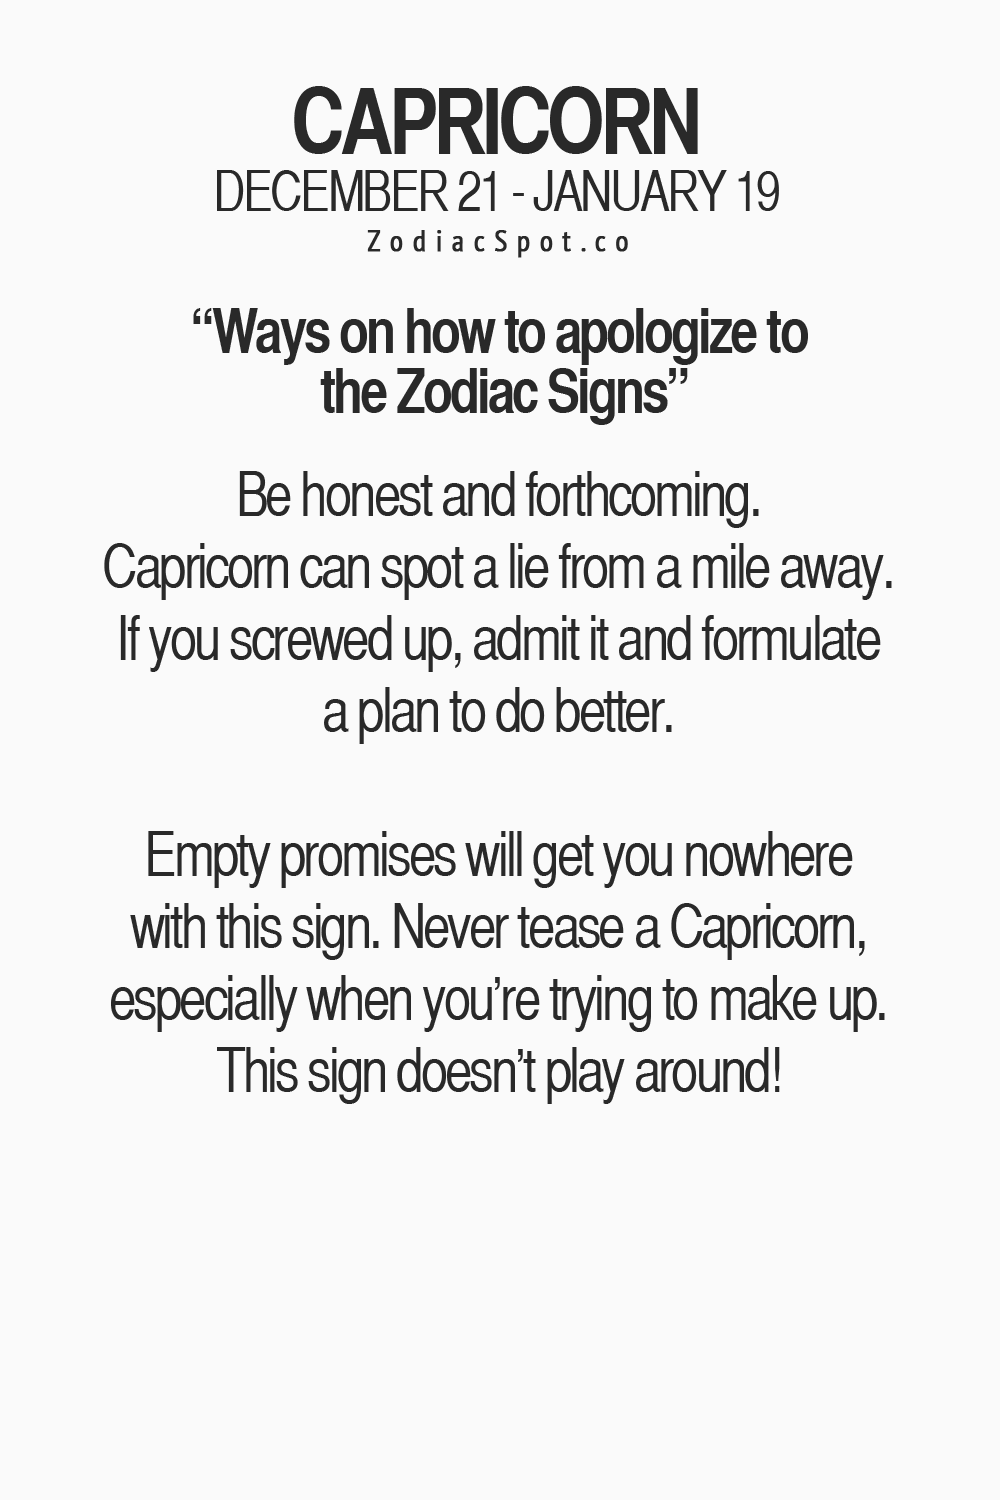 How To Apologize To A #capricorn